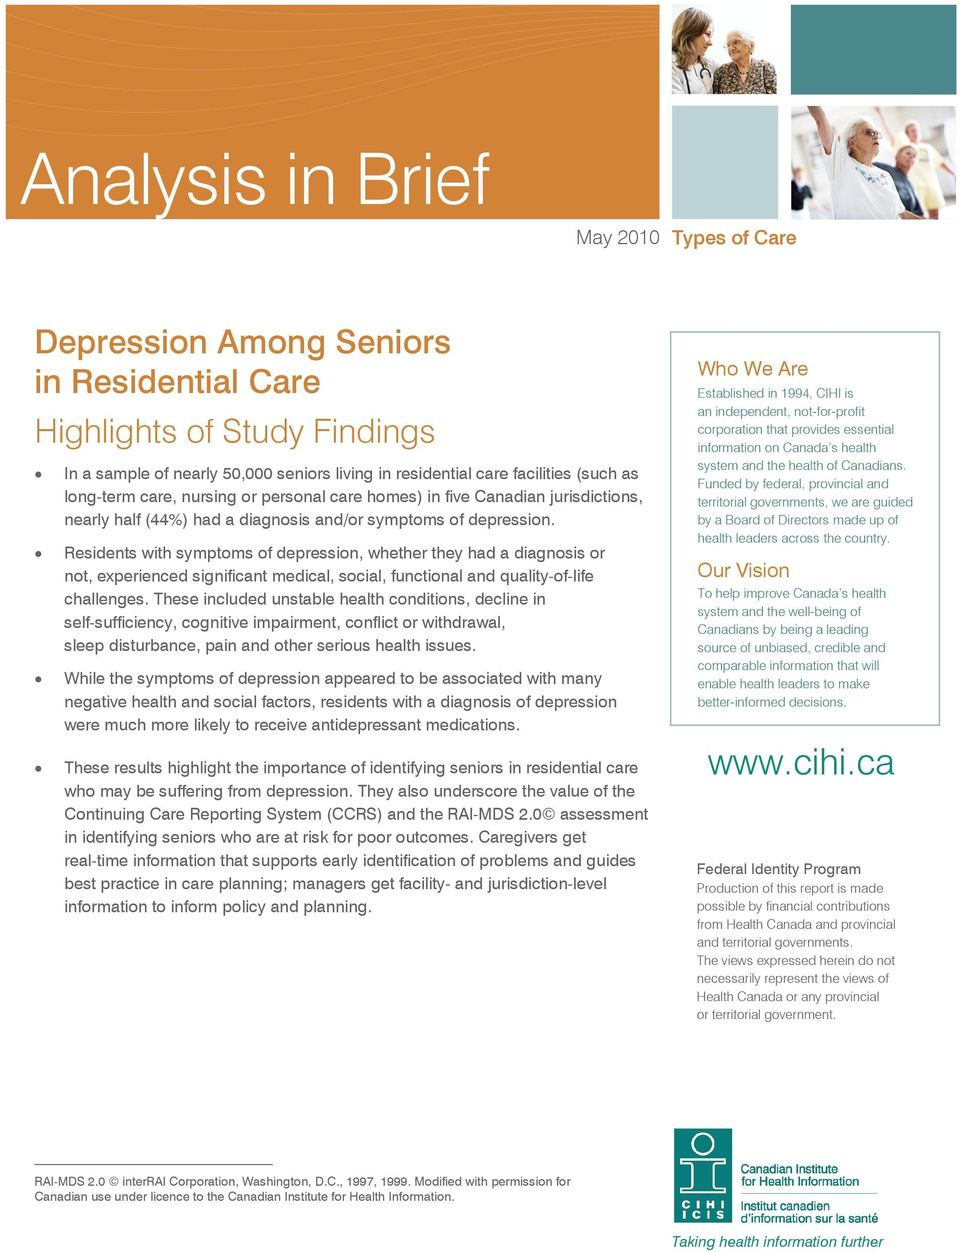 Residents with symptoms of depression, whether they had a diagnosis or not, experienced significant medical, social, functional and quality-of-life challenges.